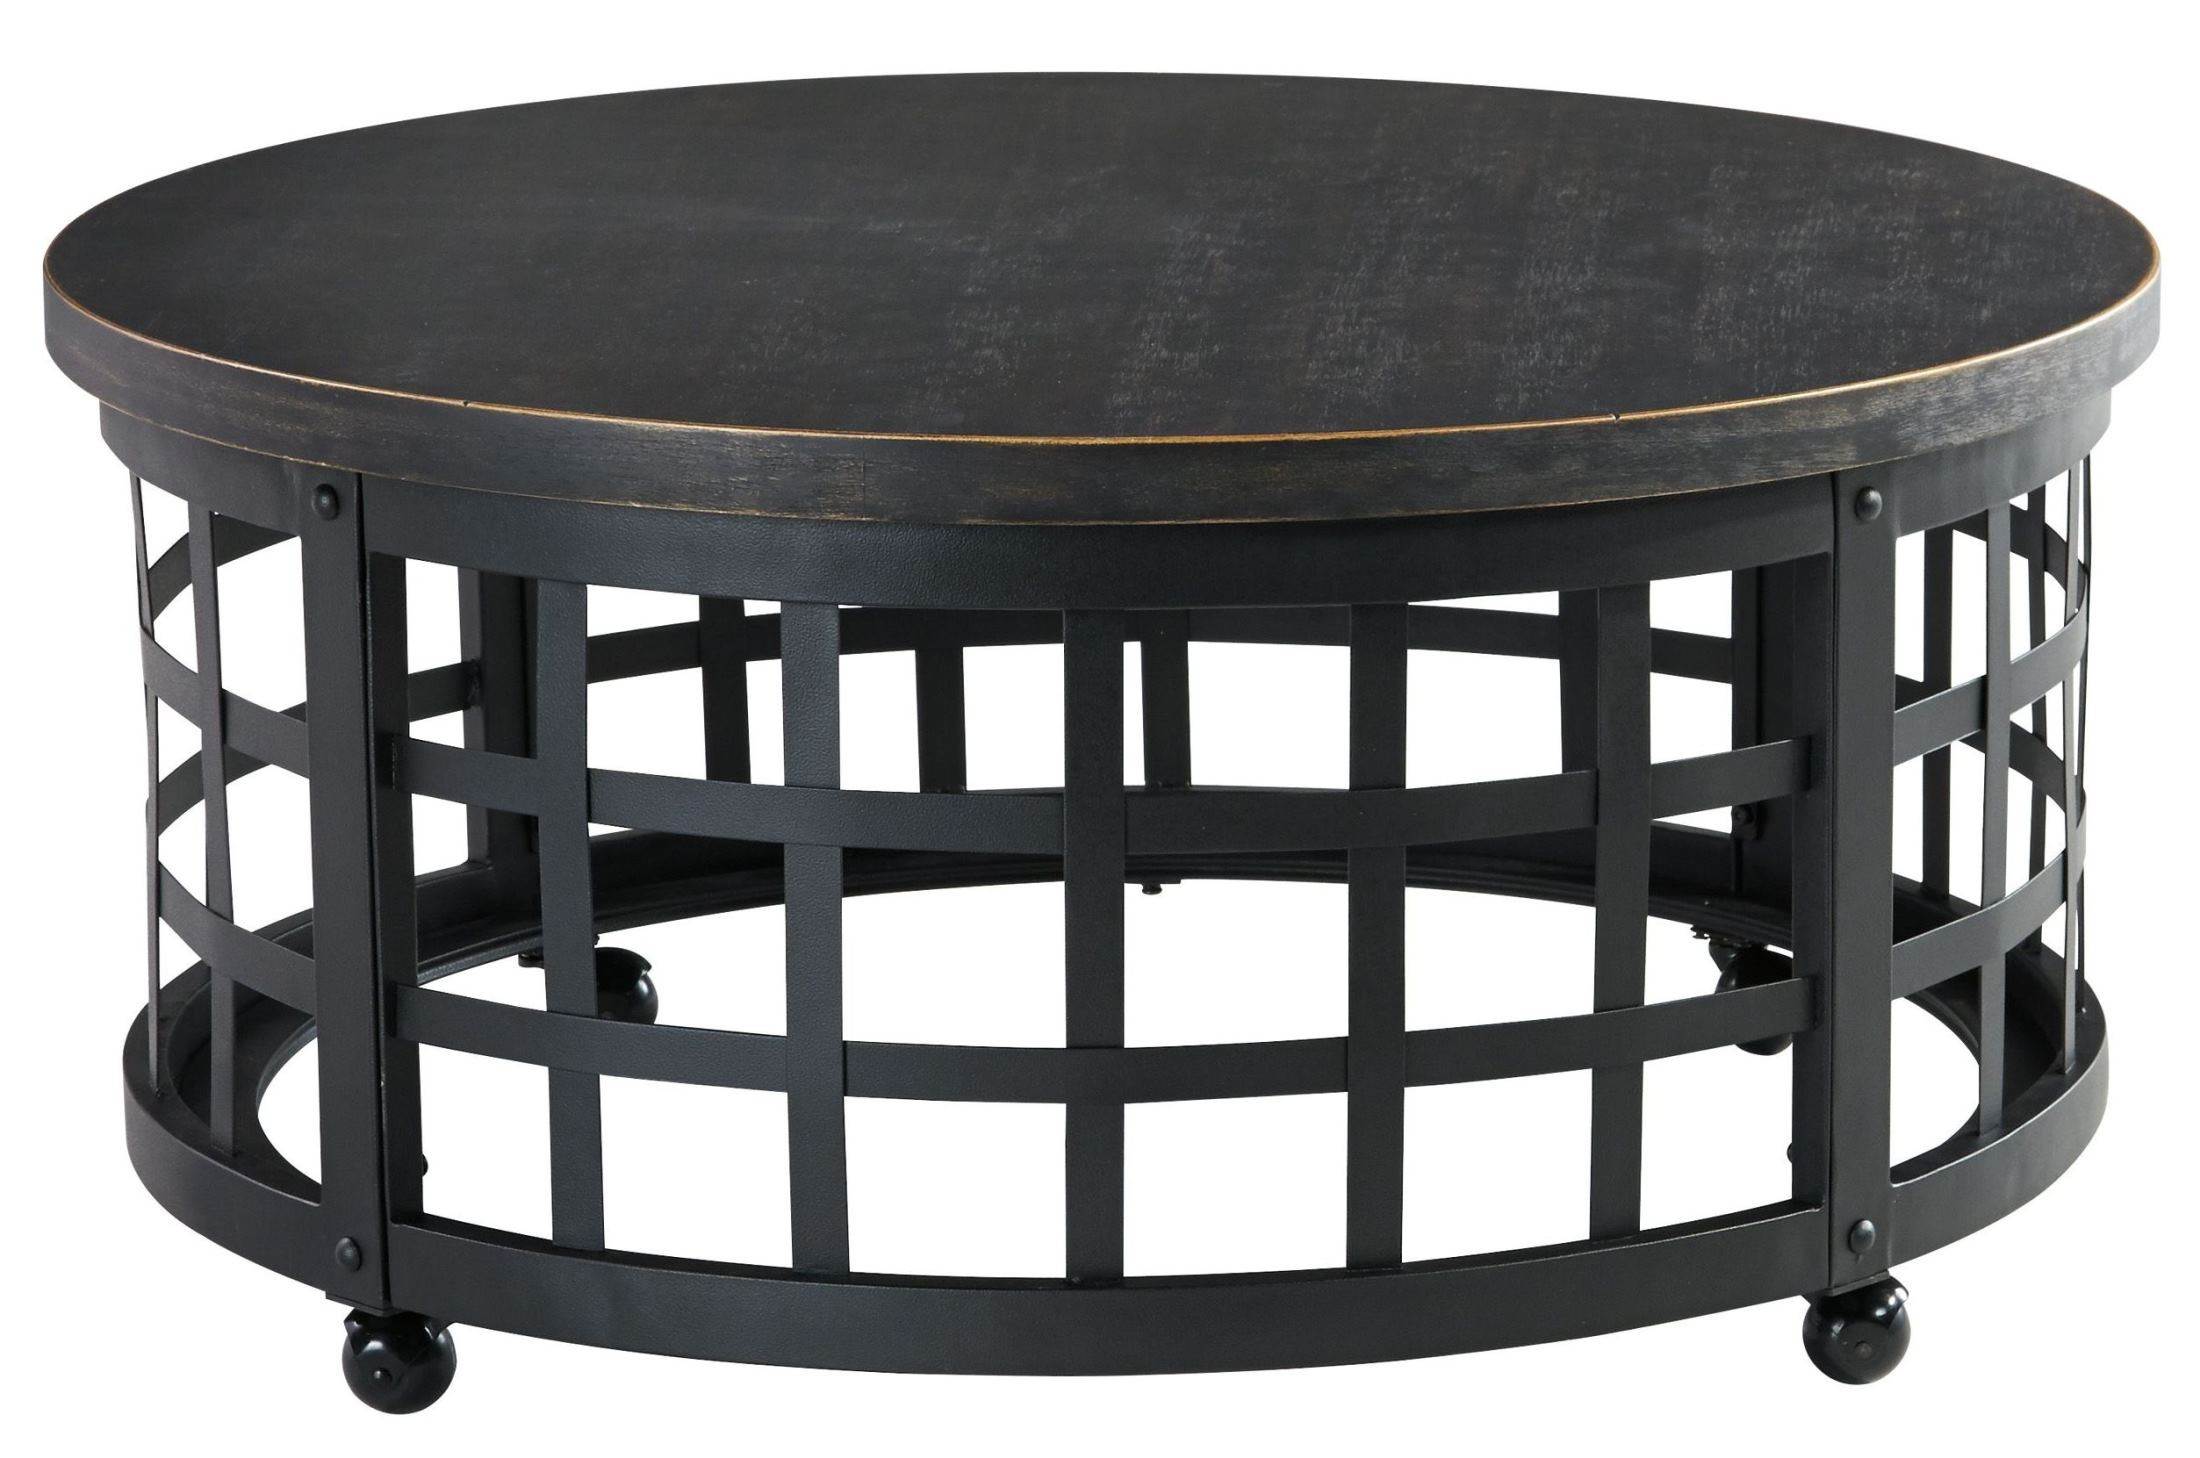 Marimon round cocktail table from ashley t746 8 for Round coffee table with chairs